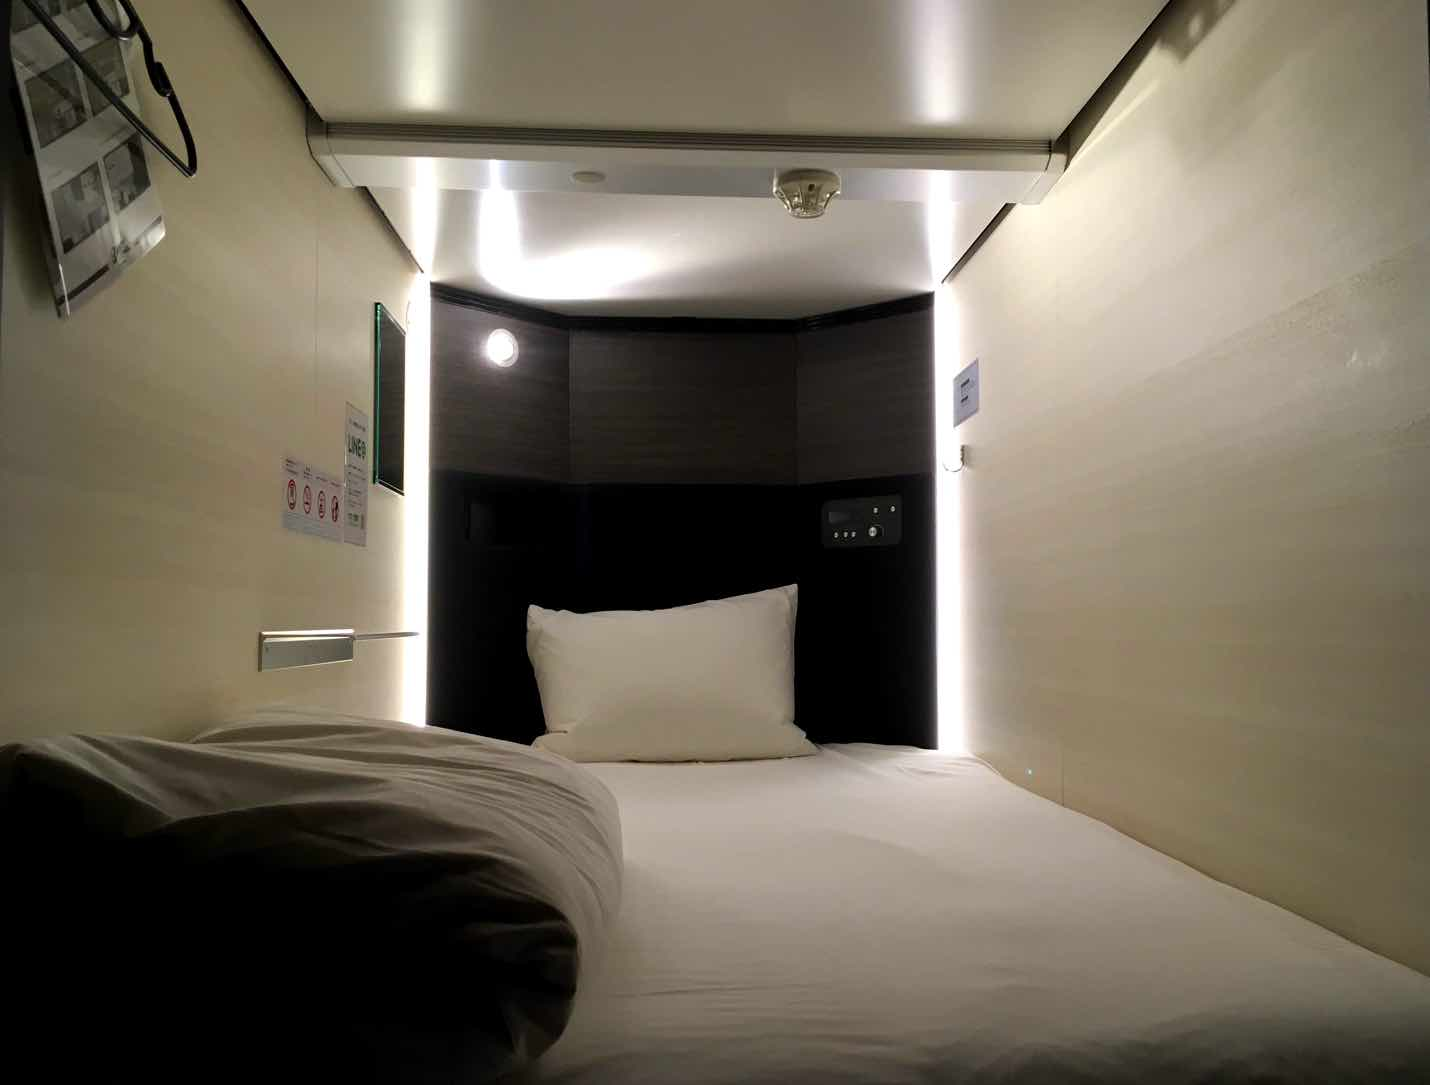 japan things to know capsule hotel tips